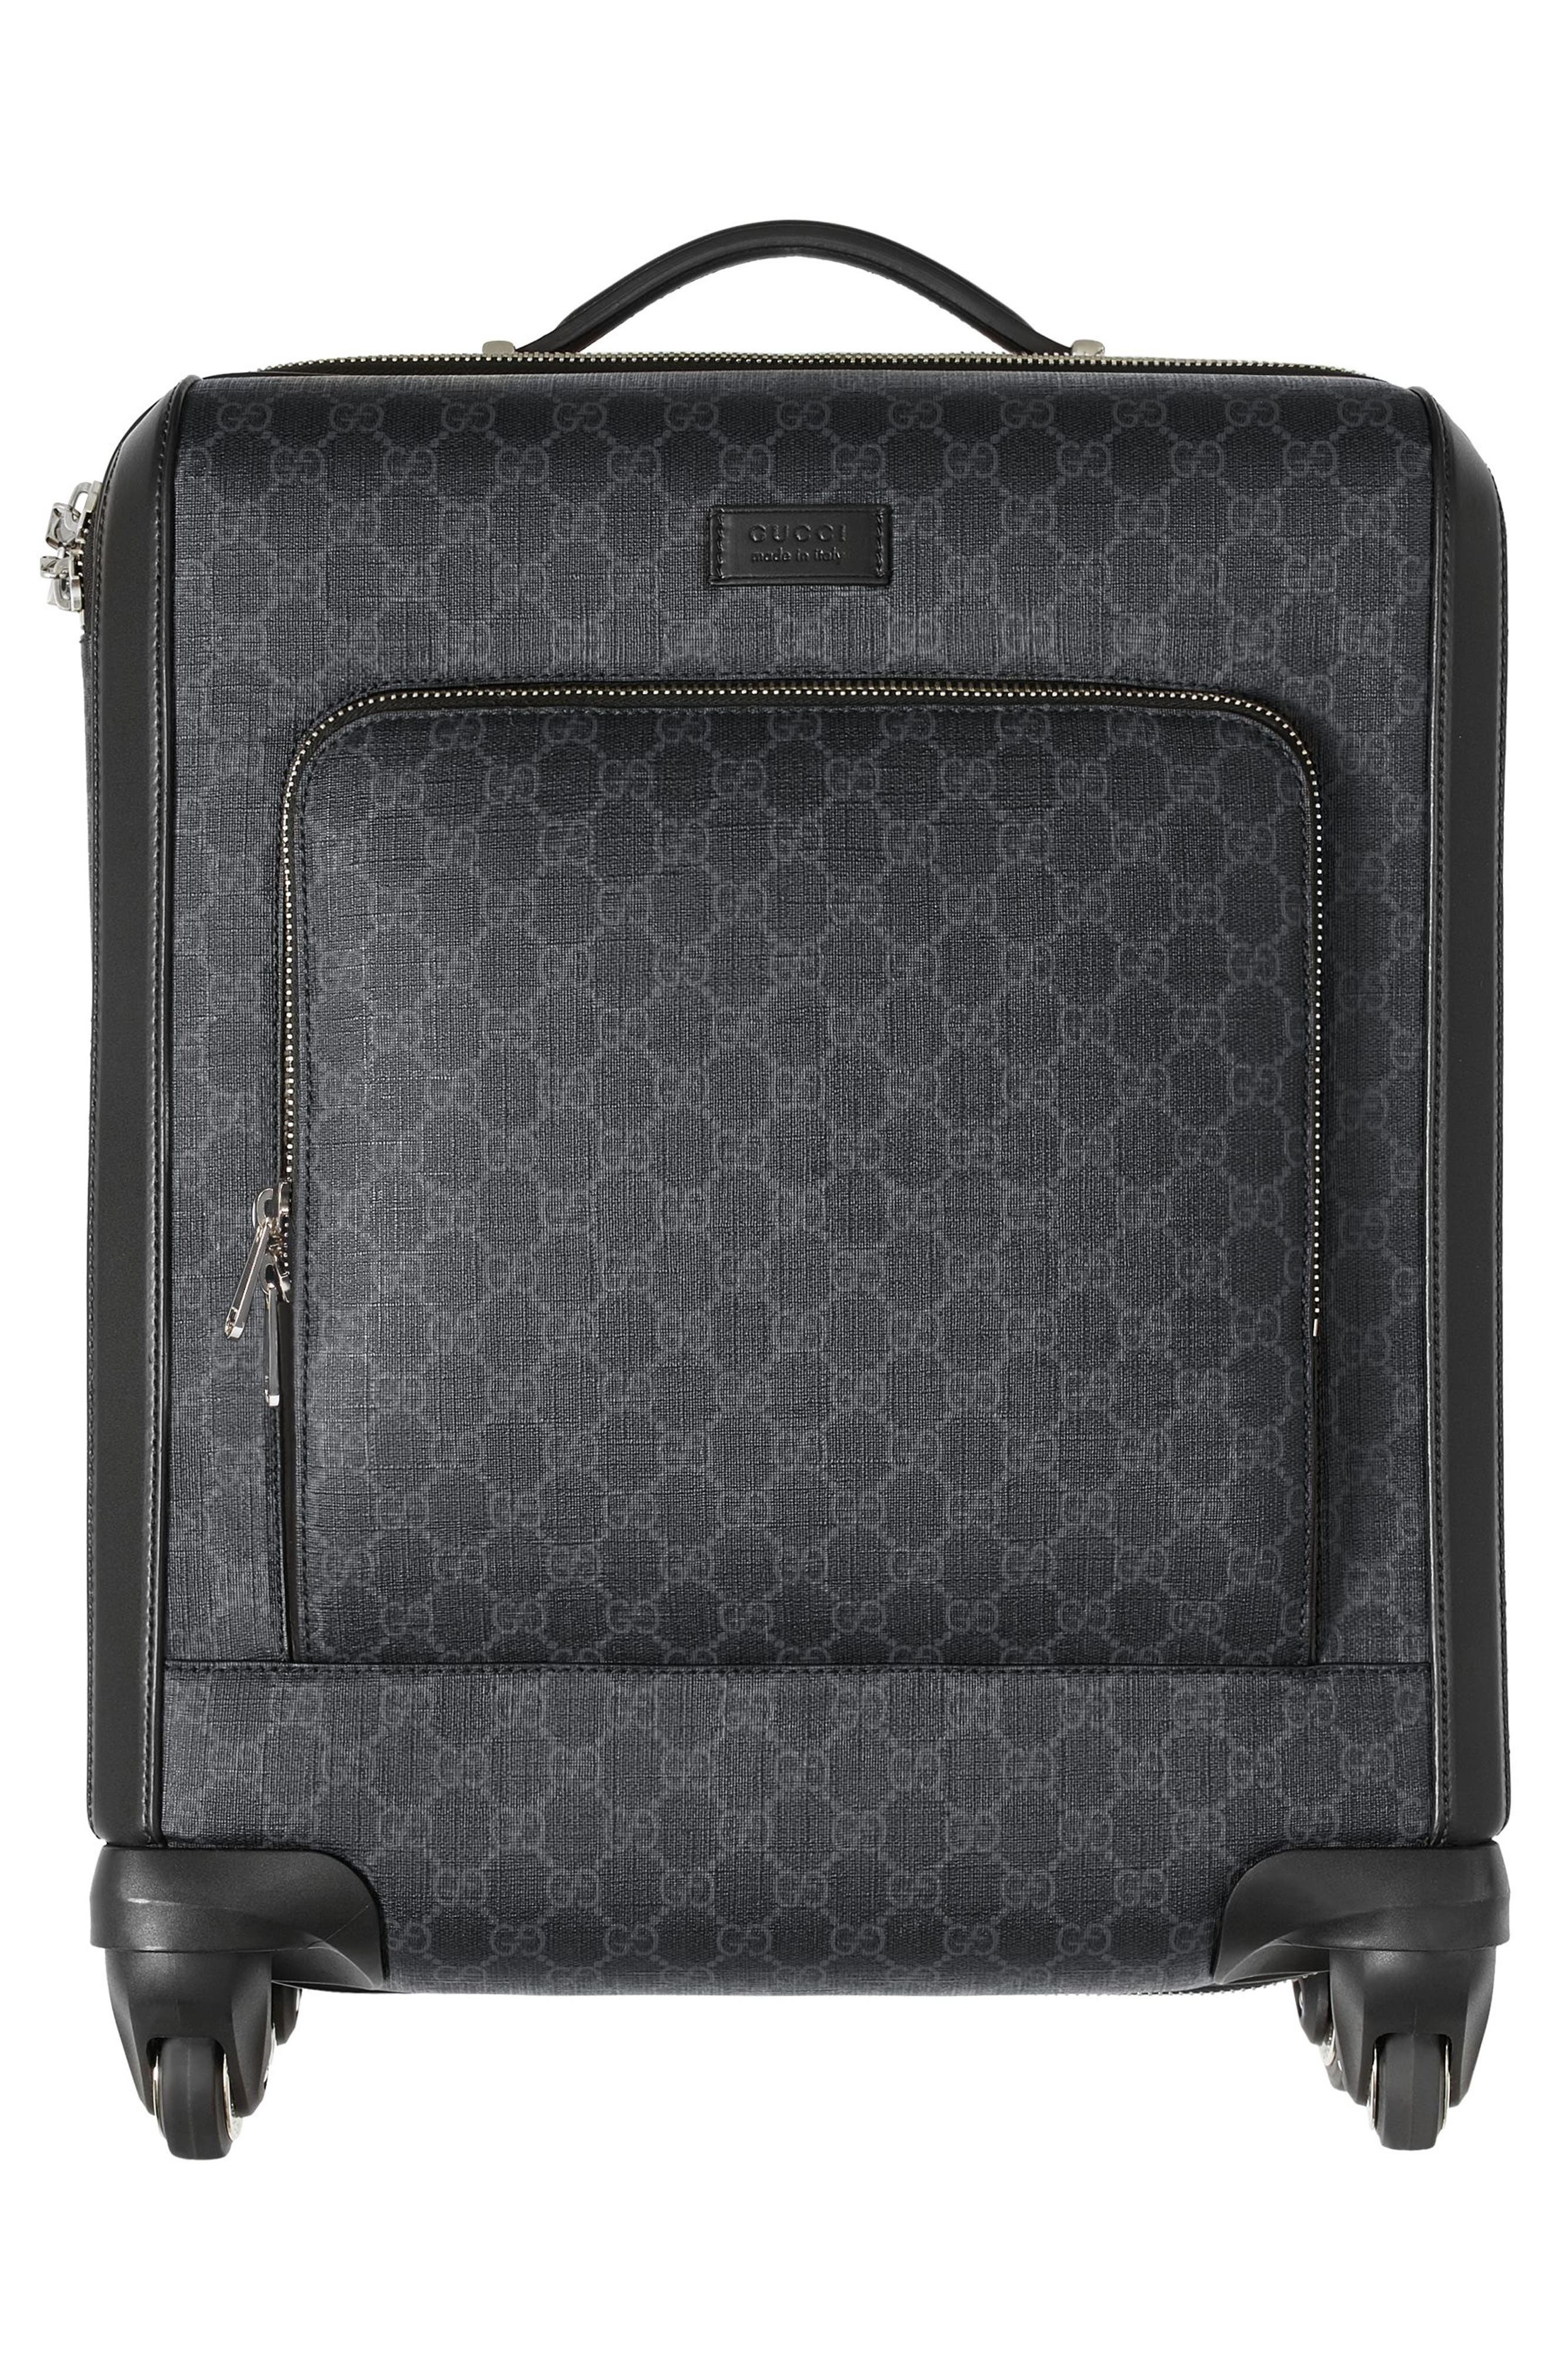 Gran Turismo Carry-On,                             Alternate thumbnail 8, color,                             Black